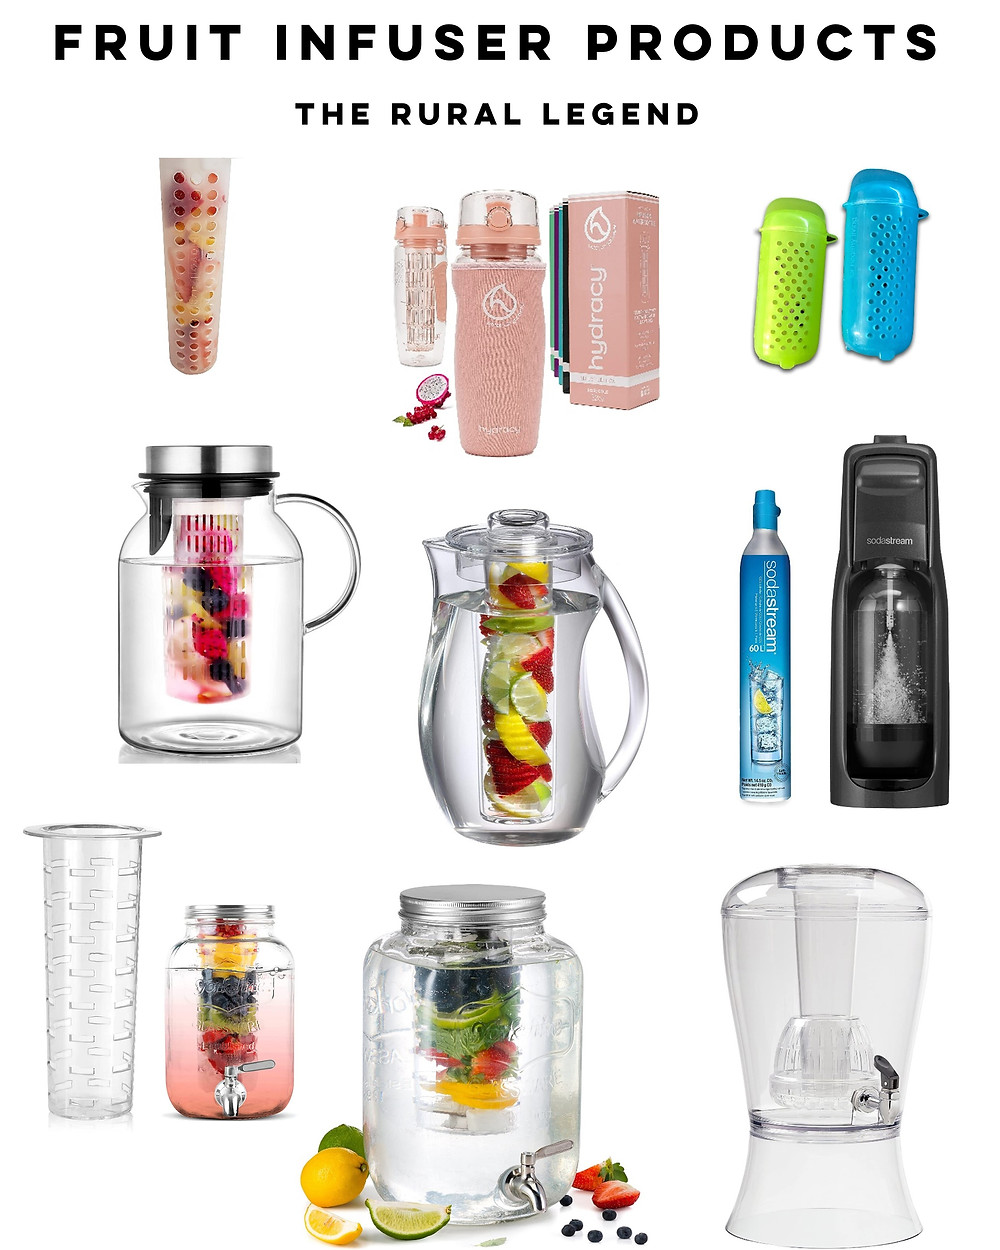 Hydration tips, drink more water, hydration benefits, fruit infused water, healthy recipes, how to drink more water, fruit and herb pairings, food blog, the rural legend, healthy tips, healthy living tips, healthy eating tips, soda substitutions, hydration ideas, infused water, flavored water, flavored water recipes, drink recipes, healthy drink recipes, infusion products